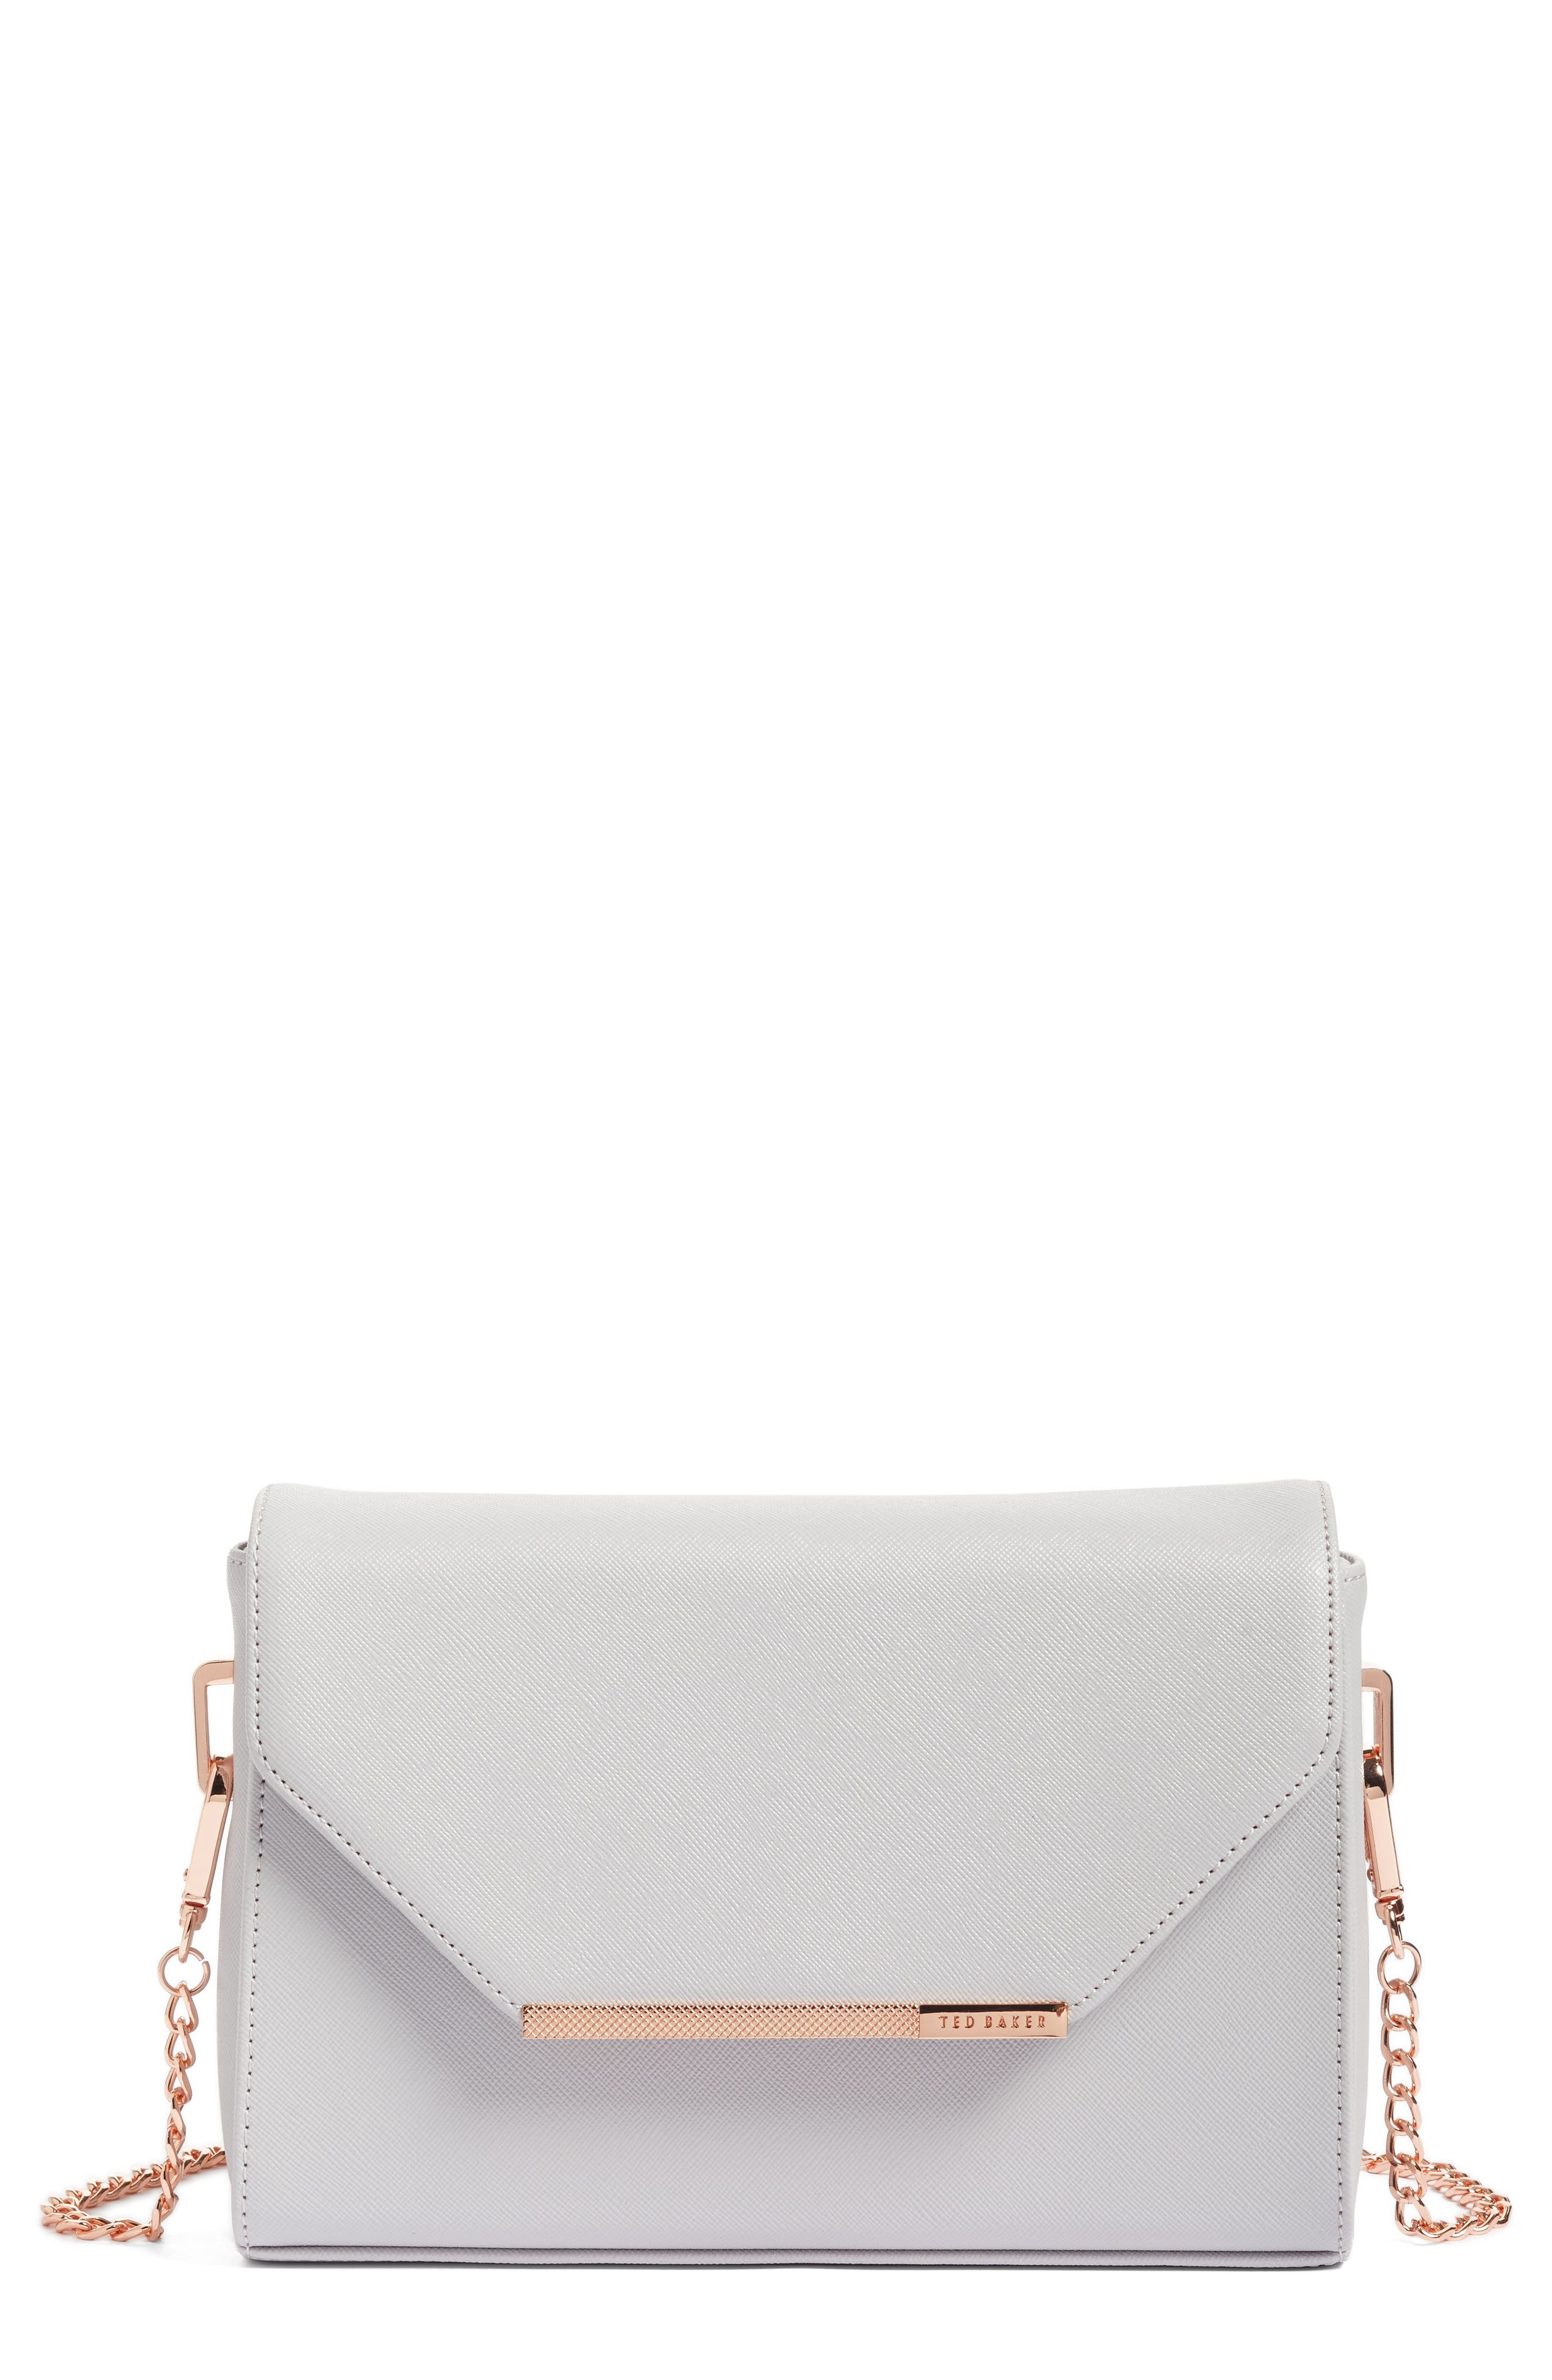 Ted Baker London Textured Bar Faux Leather Crossbody Bag (Nordstrom Exclusive)